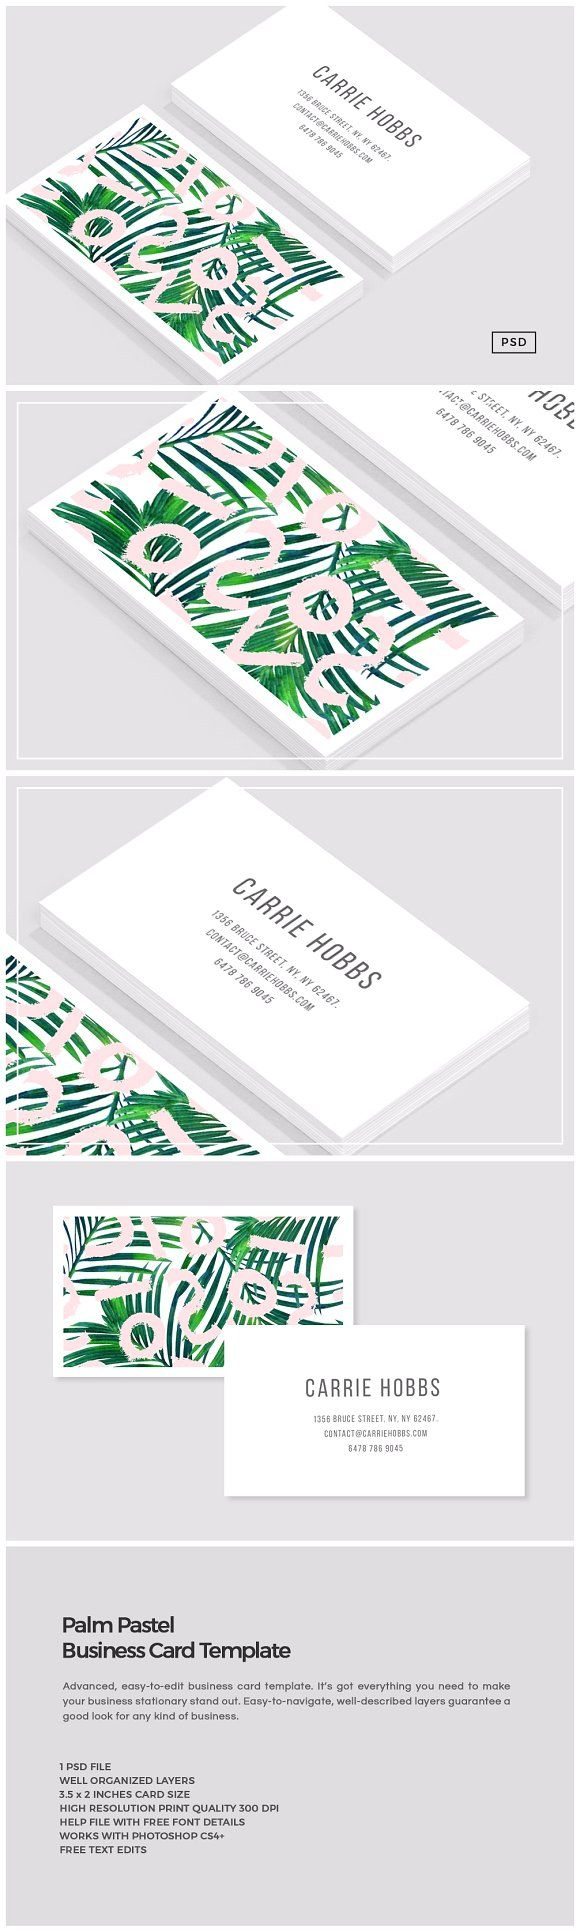 82 best business cards 2018 images on pinterest business cards palm pastel business card template by the design label on creativemarket flashek Image collections